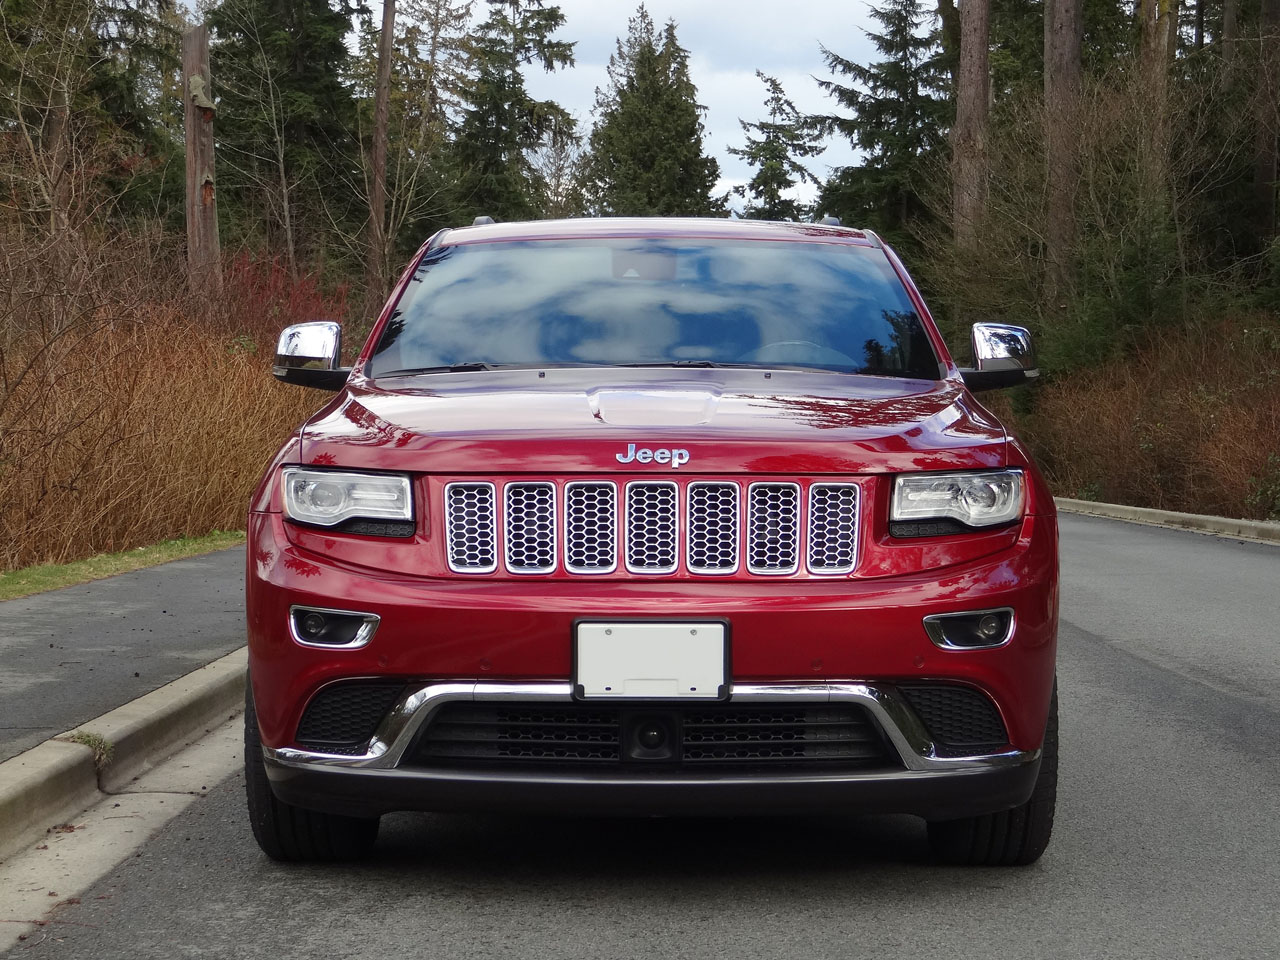 2014 Jeep Grand Cherokee Summit EcoDiesel Road Test Review | The Car